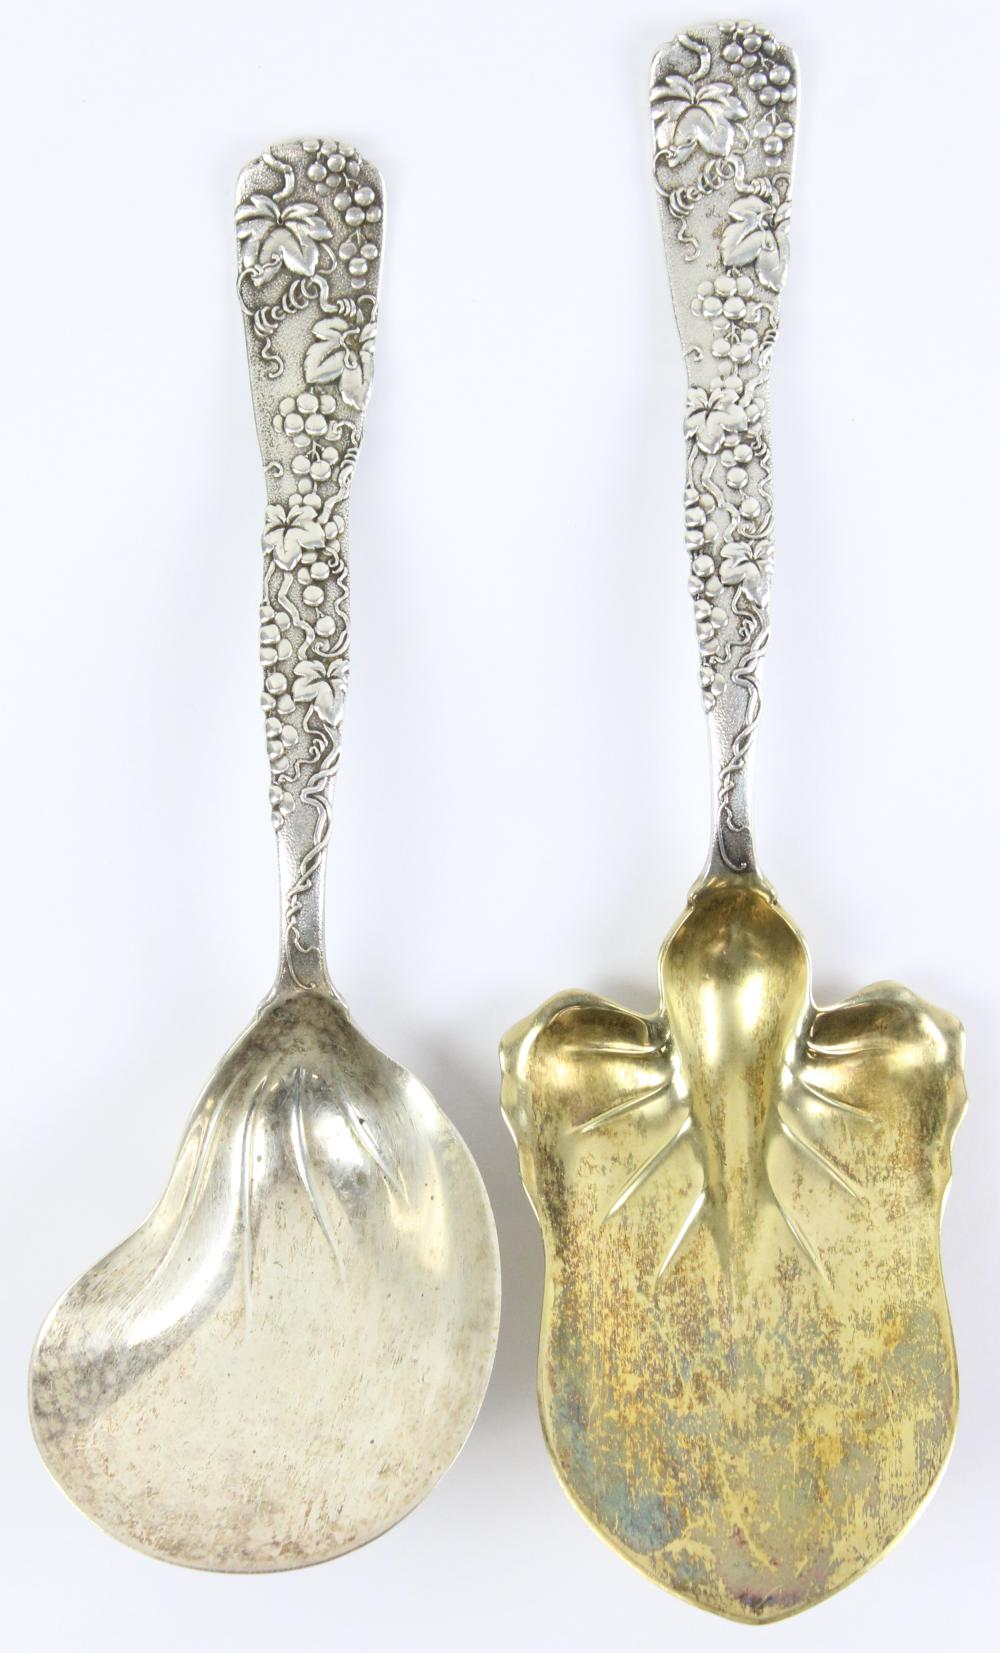 Tiffany Grapevine Sterling Silver Serving Items